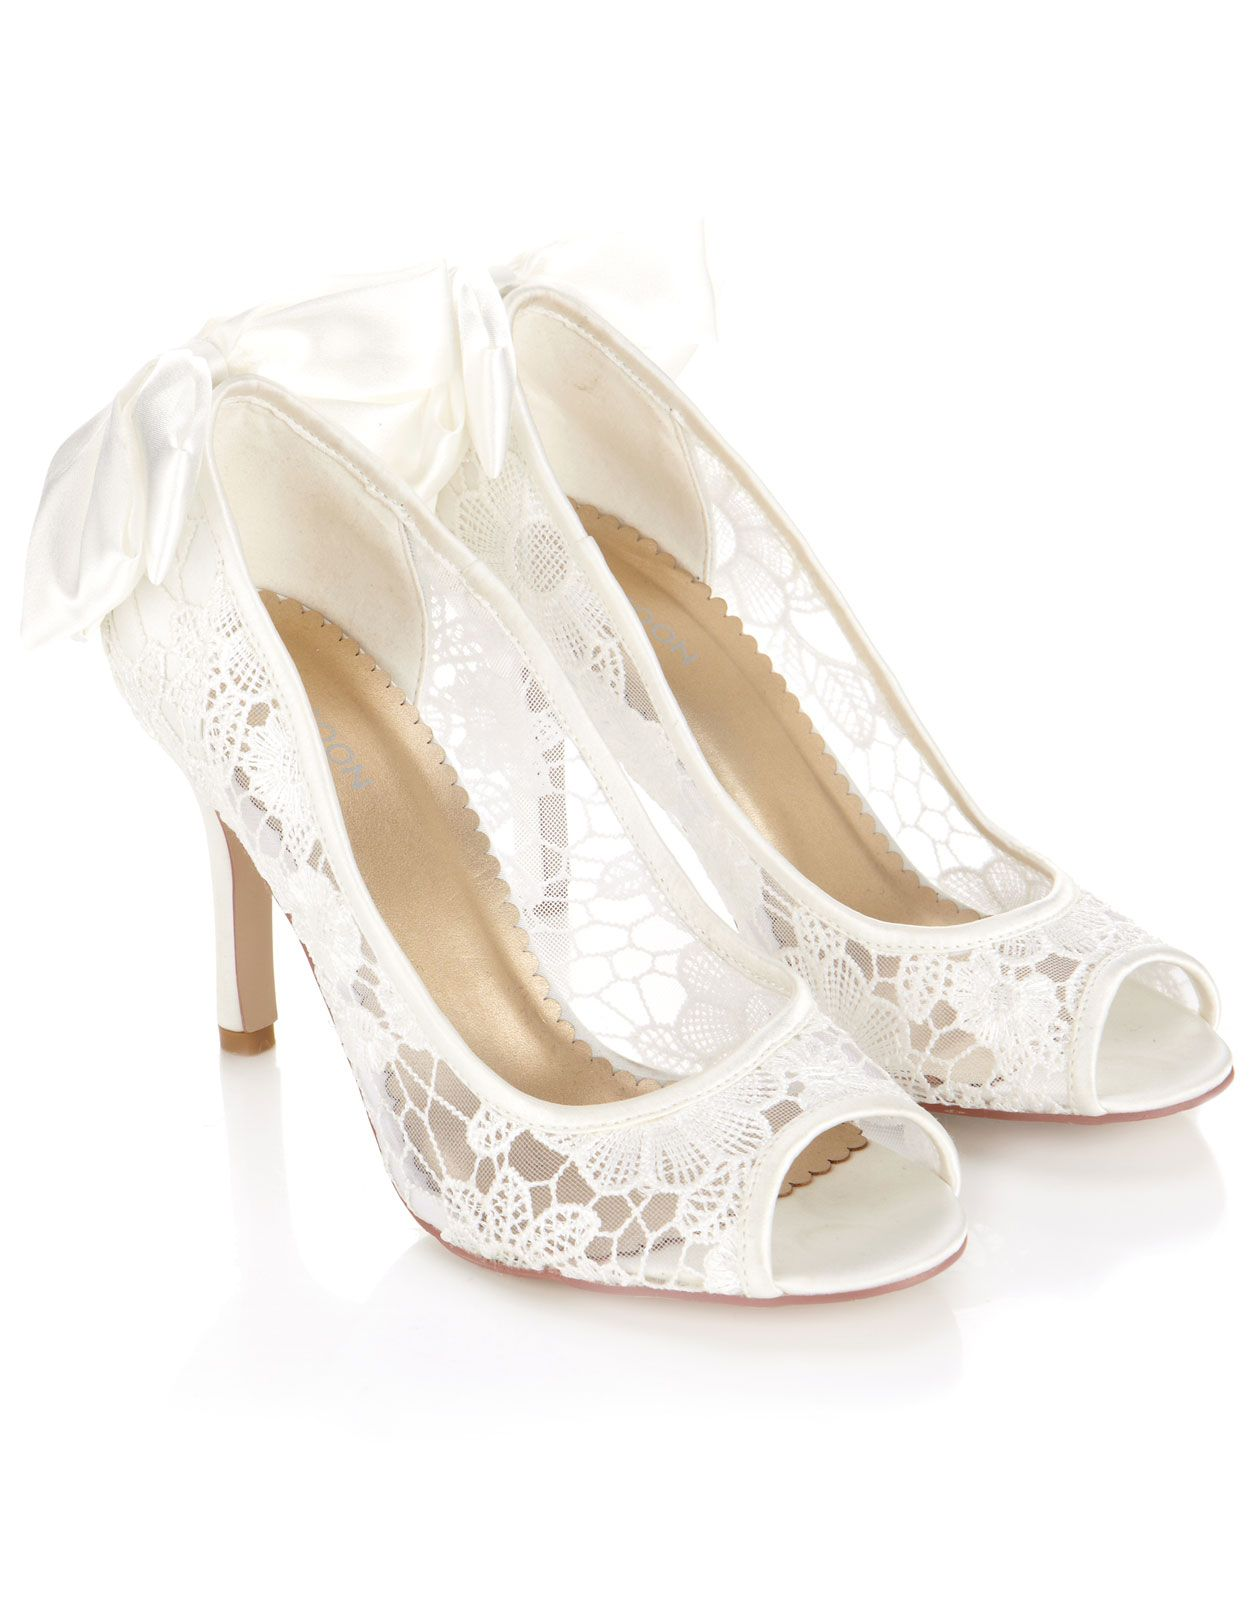 Superieur Lilliana Vintage Bow Peeptoe In Ivory From Monsoon. I Have Just Bought  These, Soooooo · Vintage Wedding ShoesVintage ...